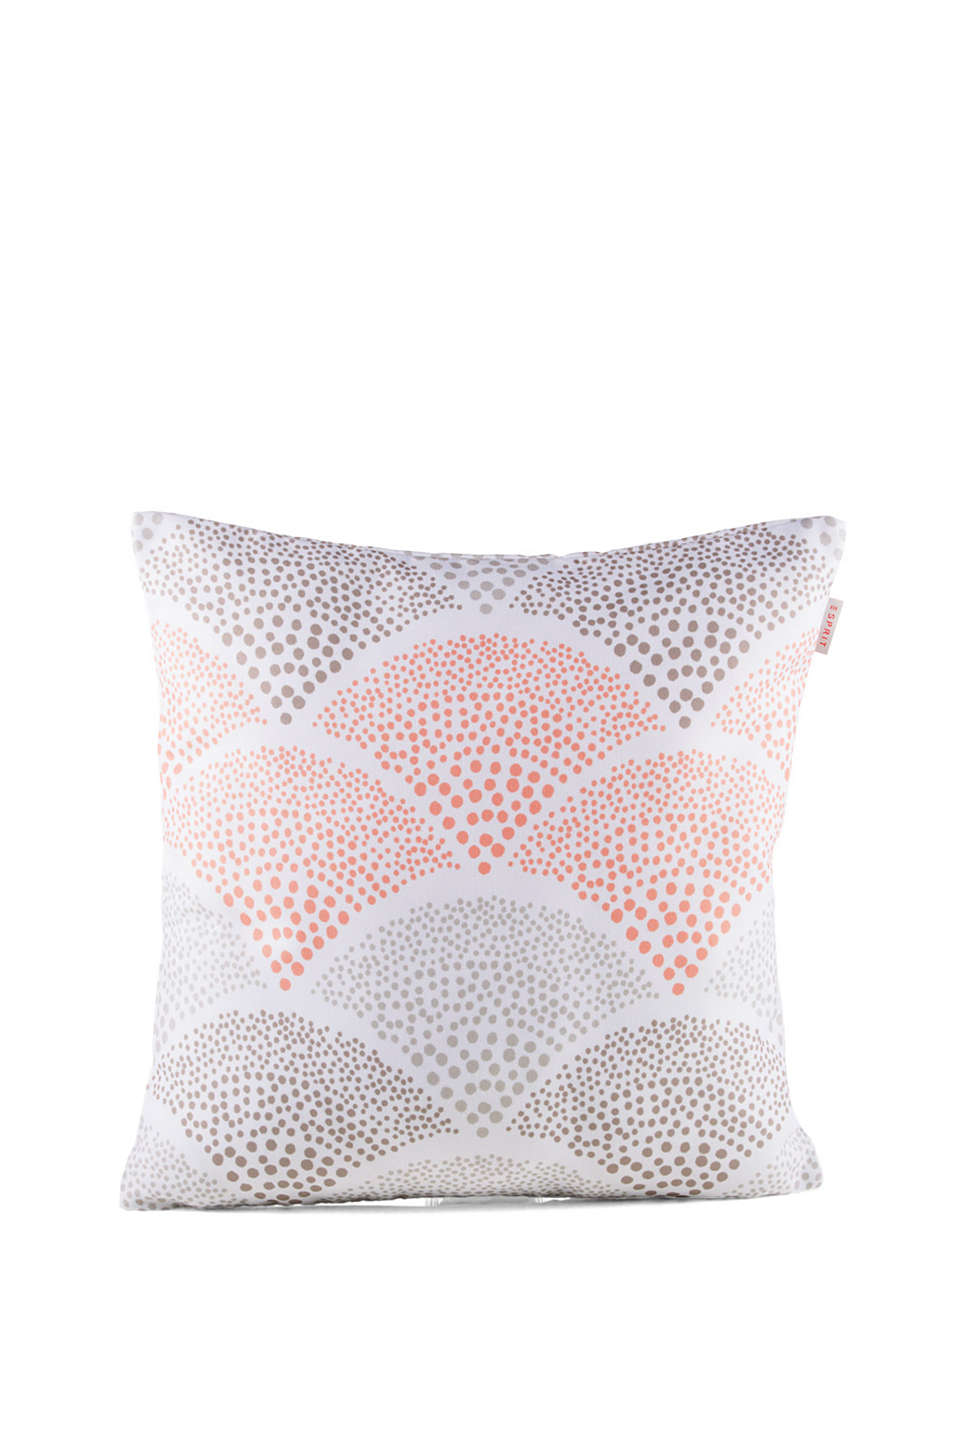 Cushion cover with a high-quality digital print of a polka dot pattern